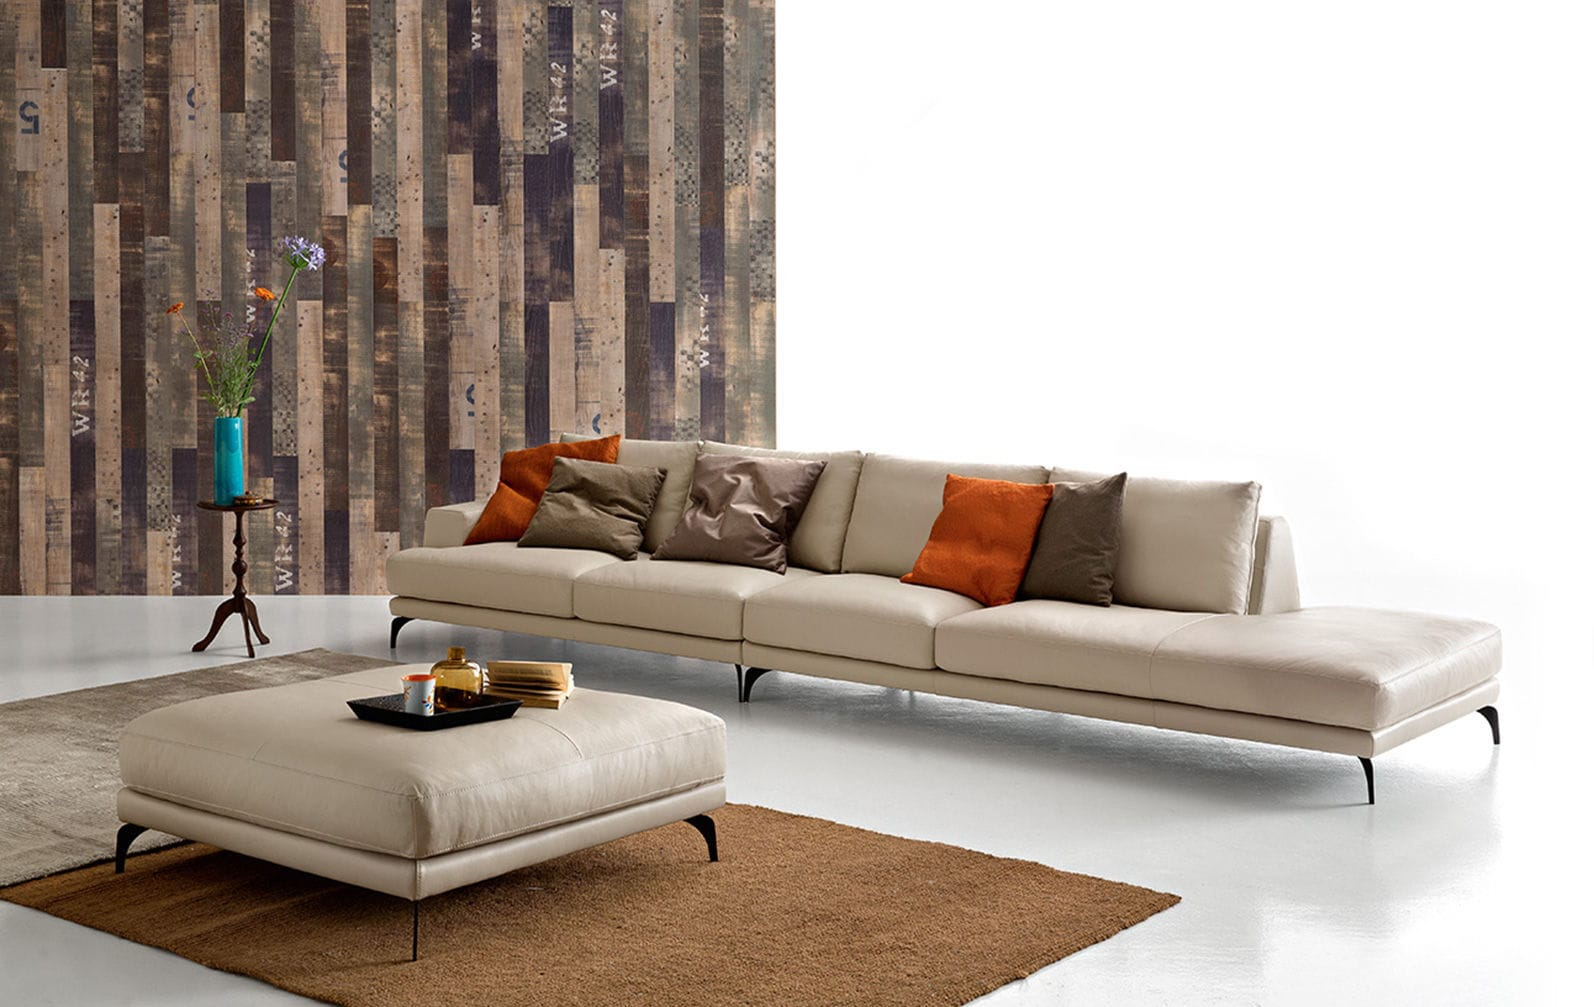 Divano d\'angolo / modulare / moderno / in pelle - FOSTER by ...